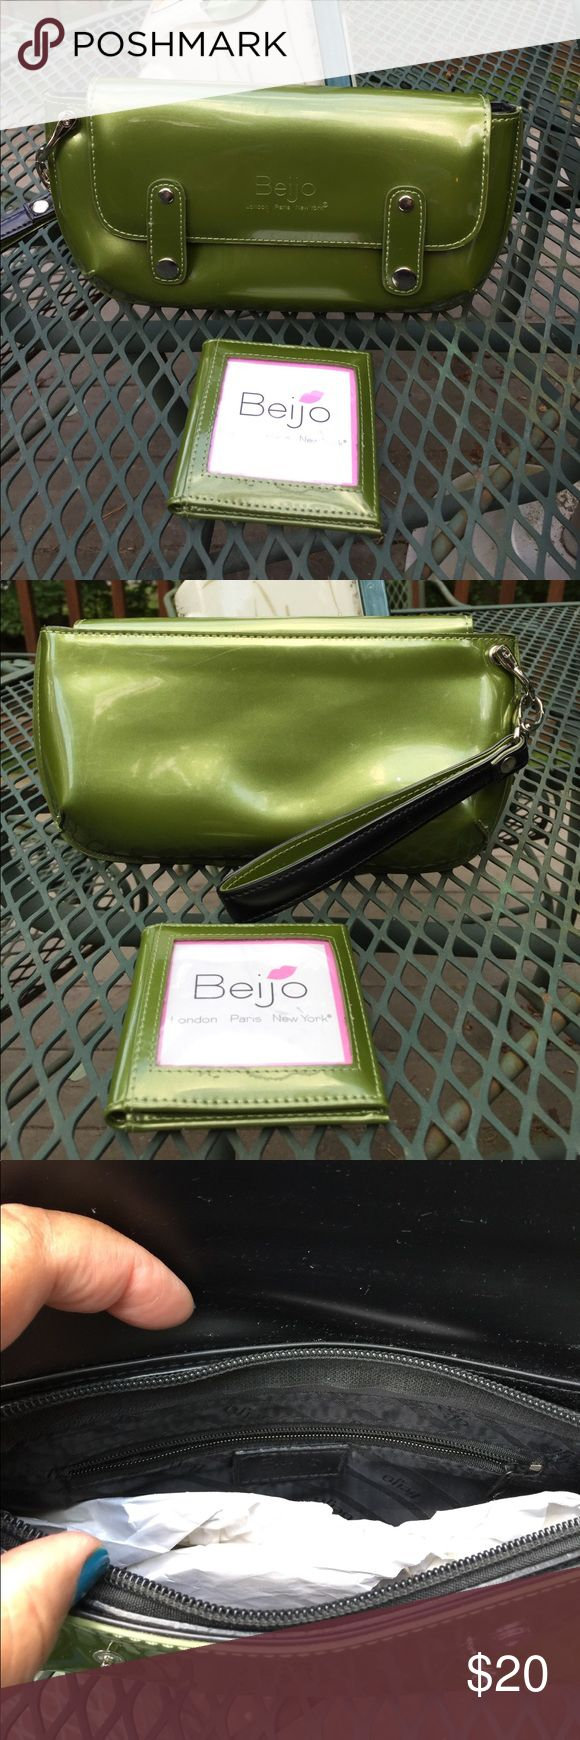 Beijo clutch Green Beijo clutch. Detachable carry strap. Has enough room for iPhone 6s. Lipstick. Credit card. Keys.  beijo Bags Clutches & Wristlets